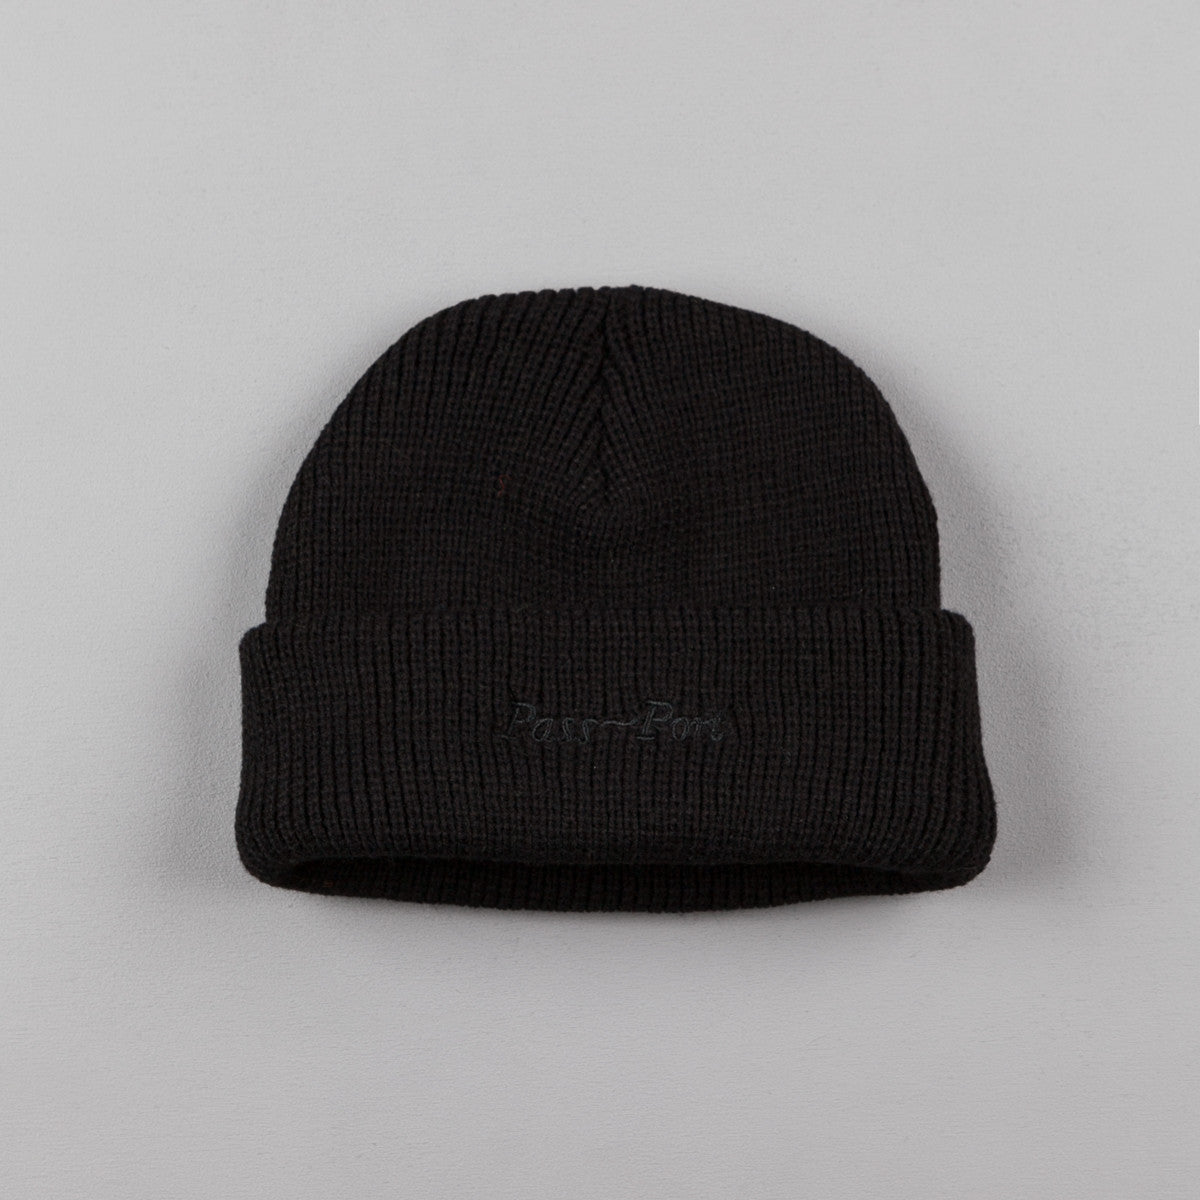 Pass Port Safe P~P Beanie - Black